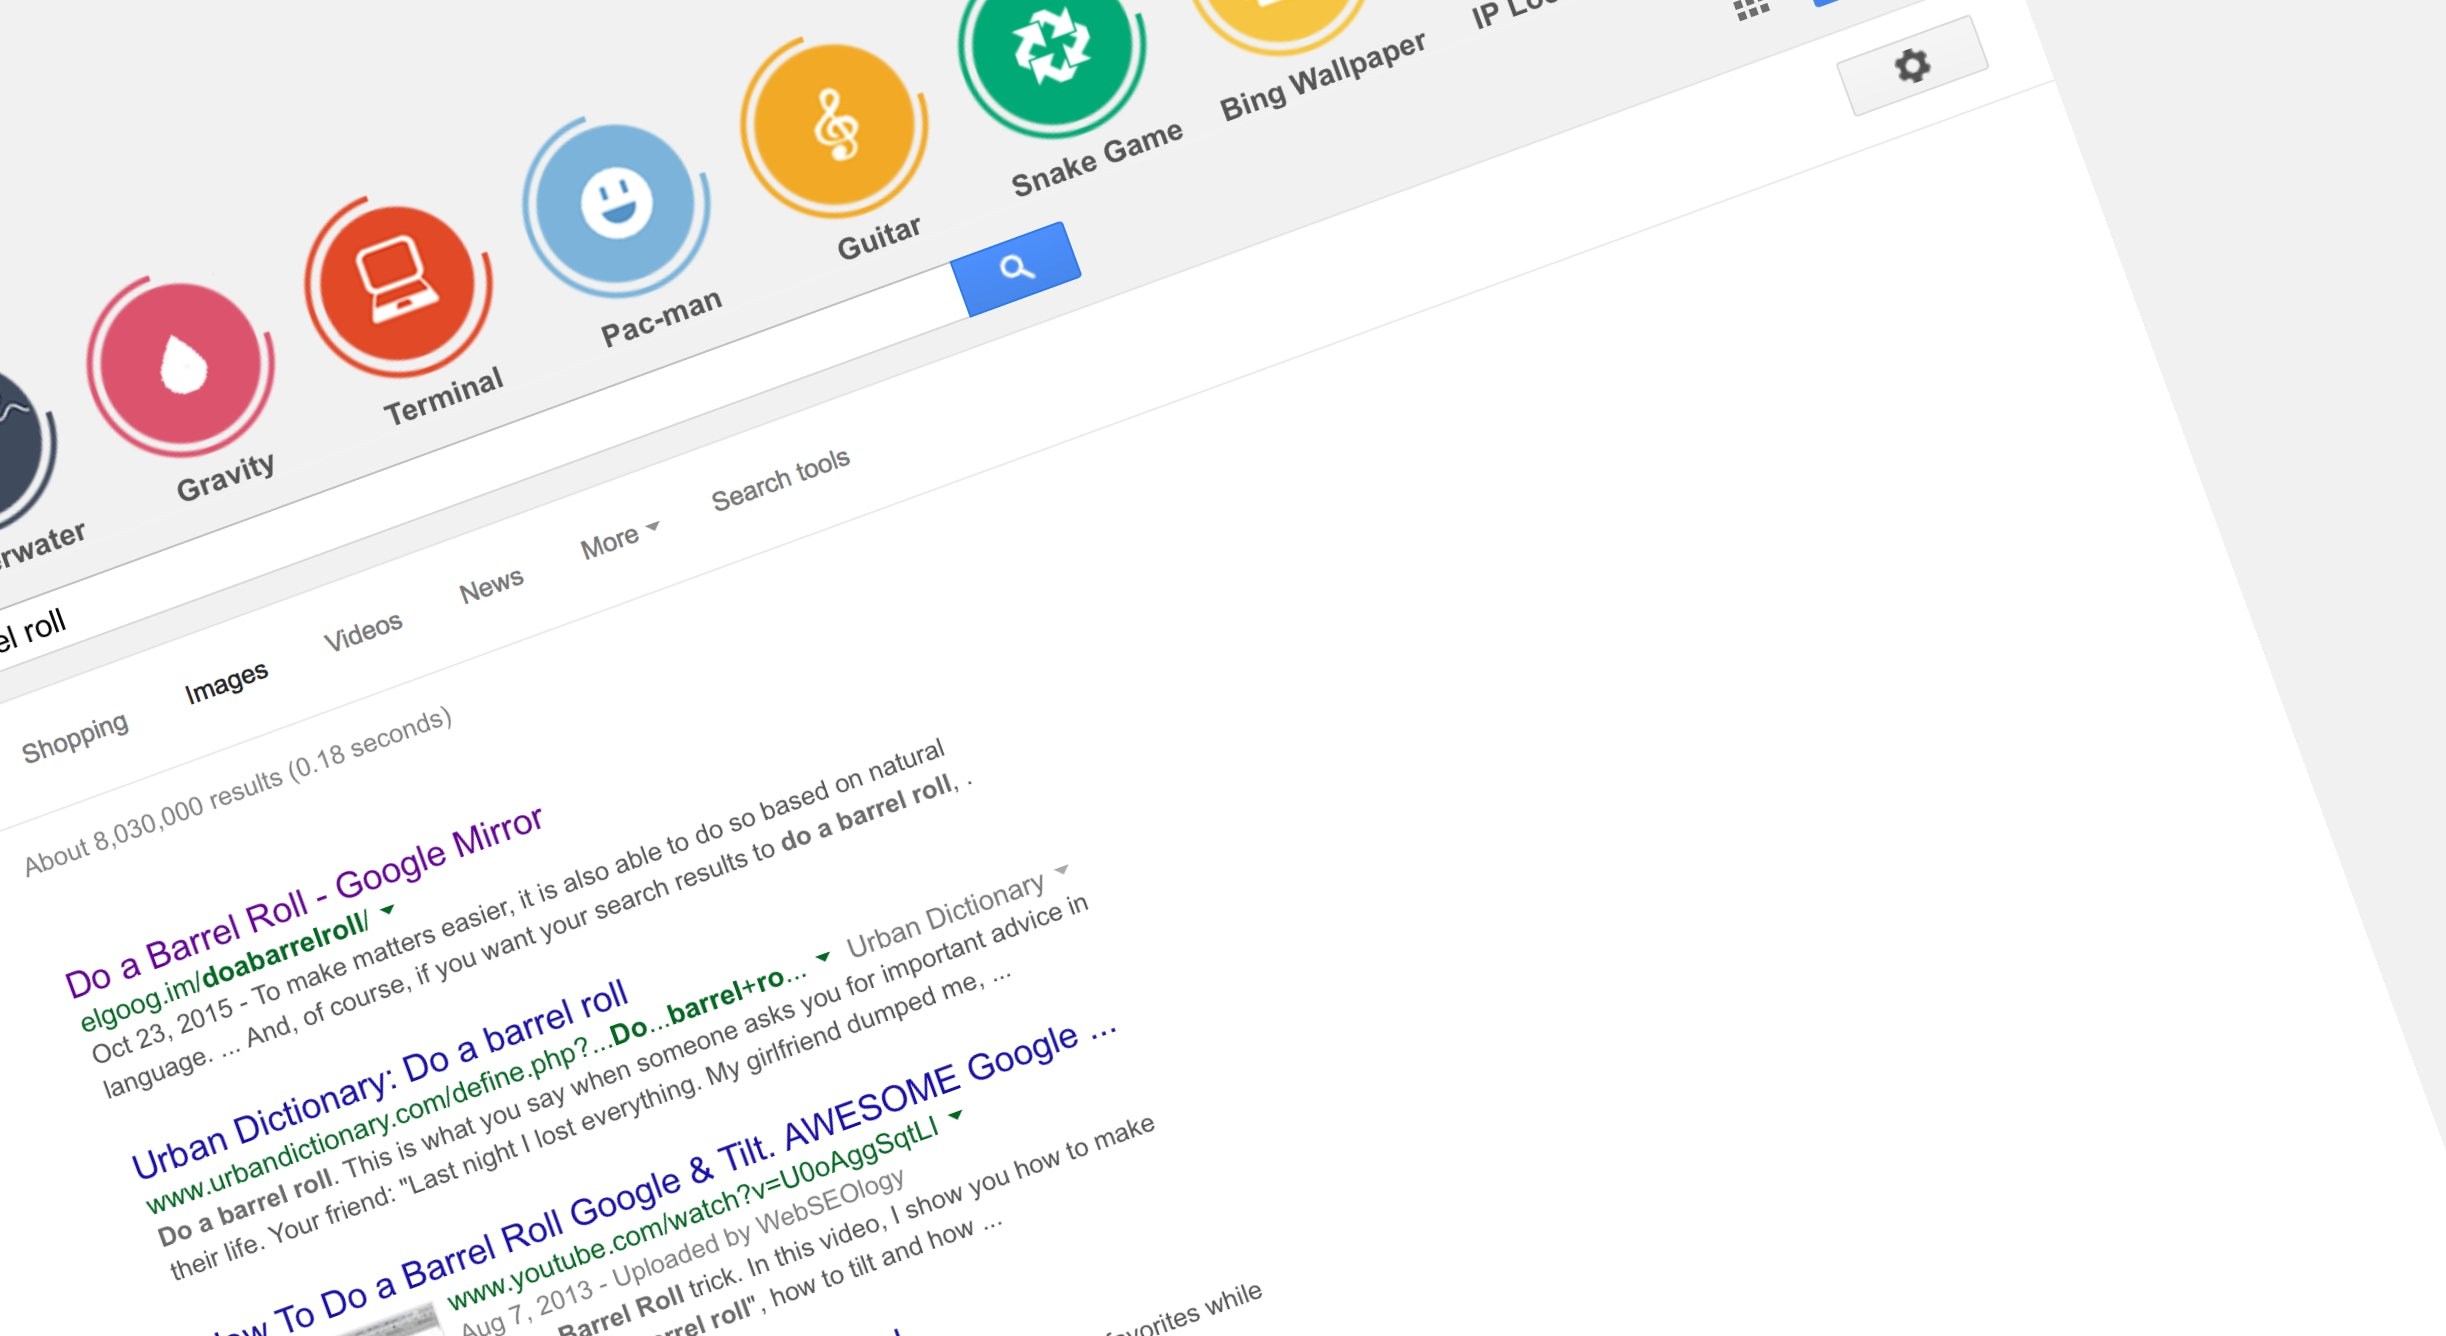 10 google product easter eggs that will keep you entertained no